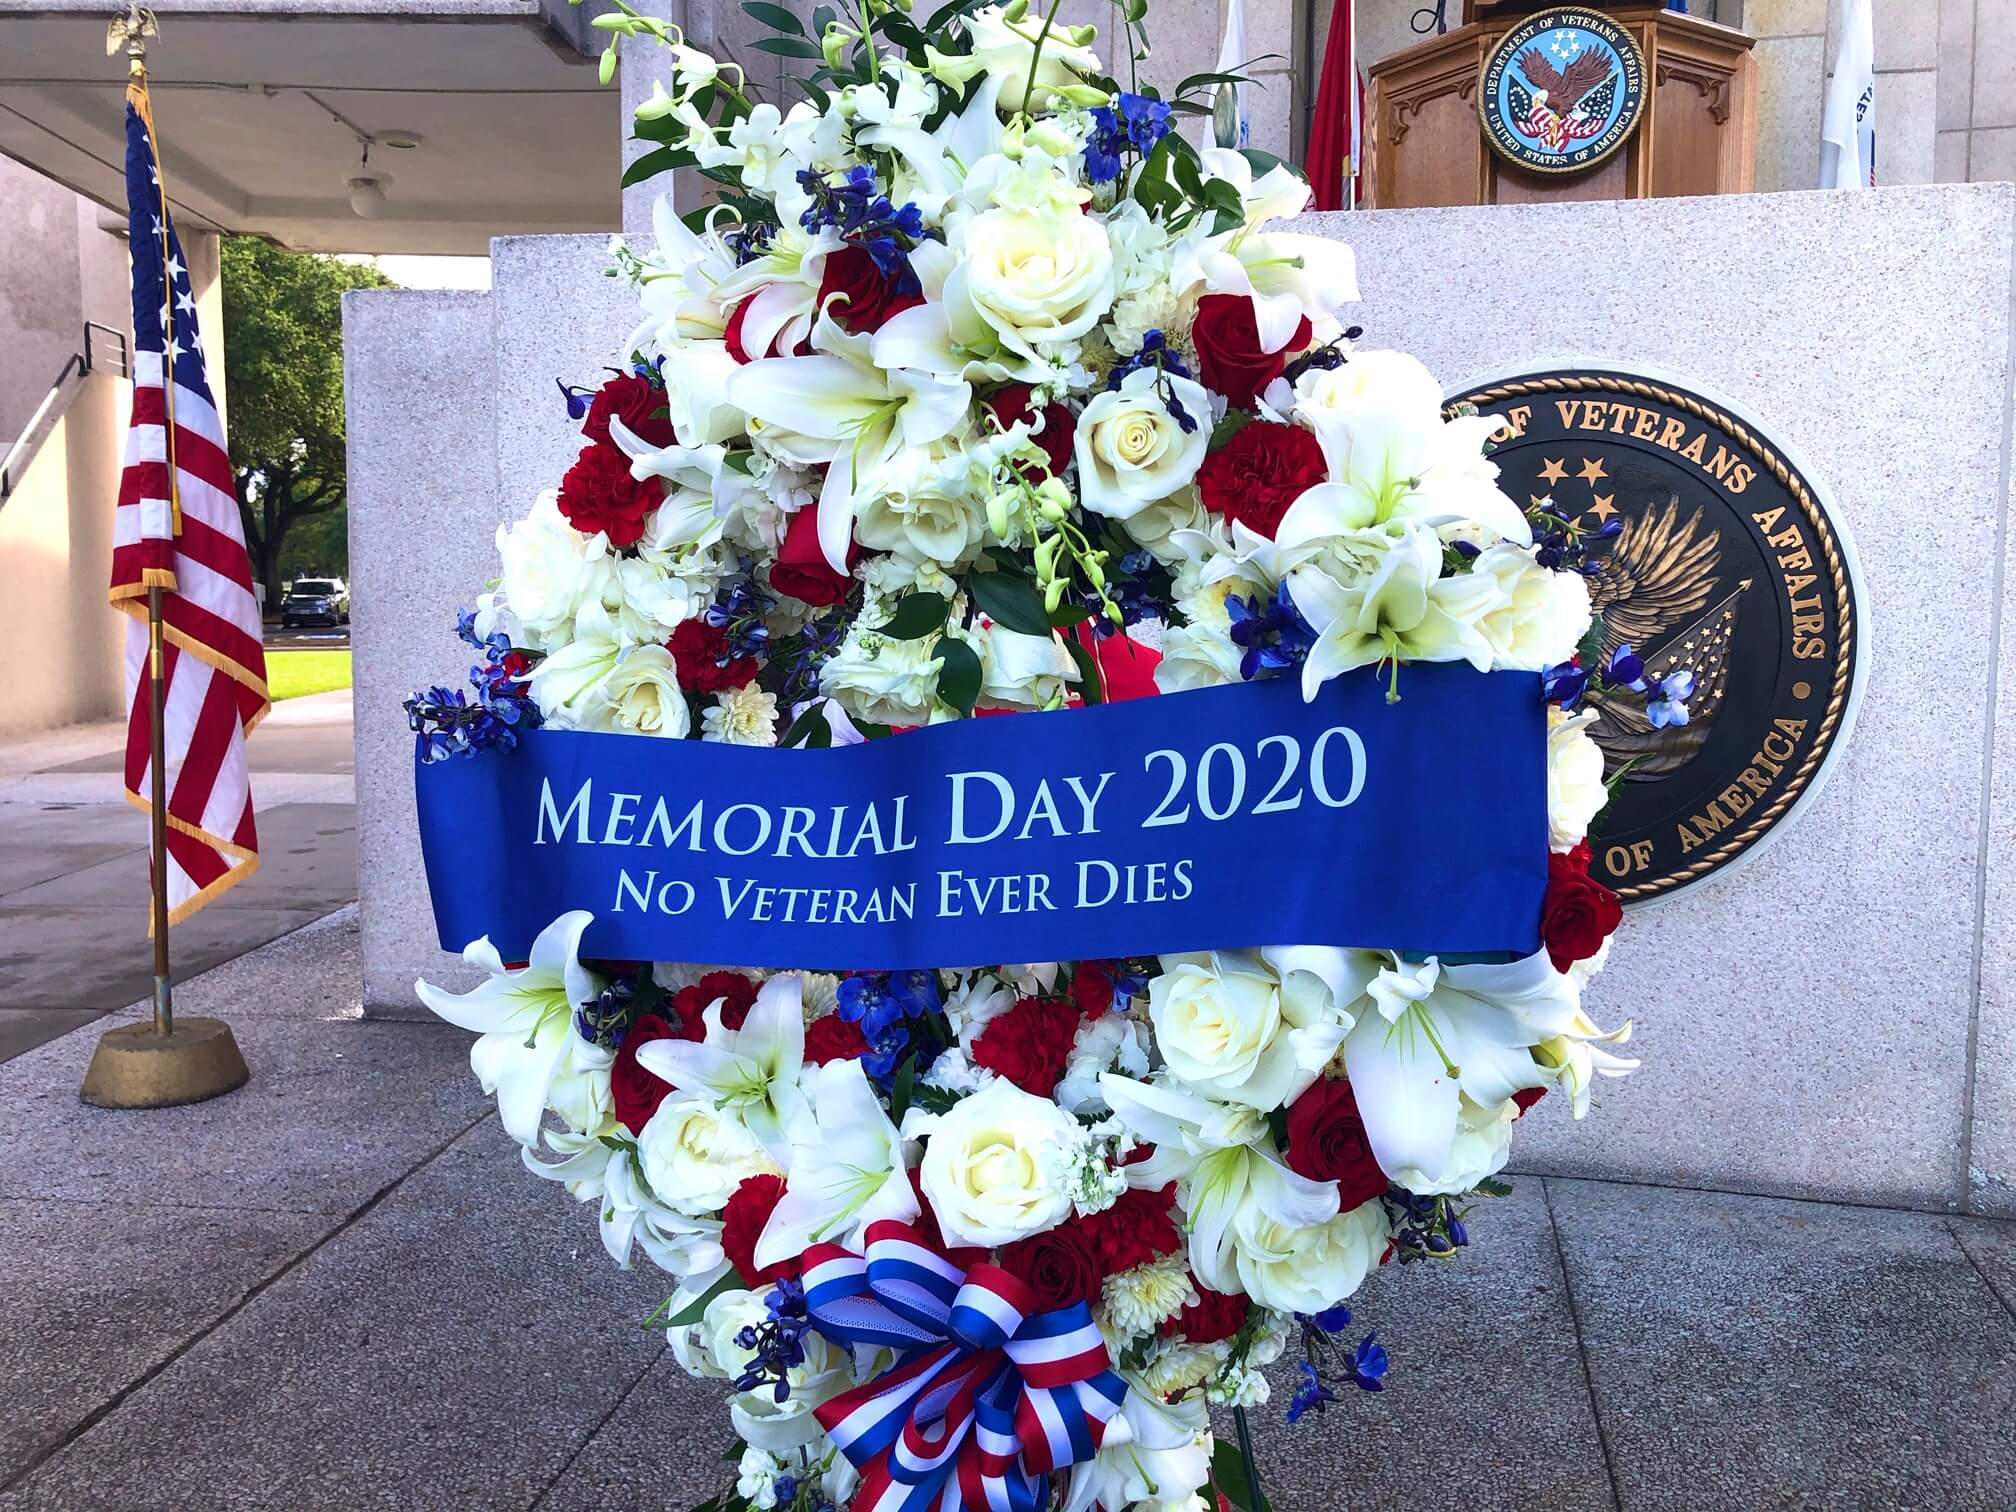 A wreath was placed at the cemetery in honor of the fallen.